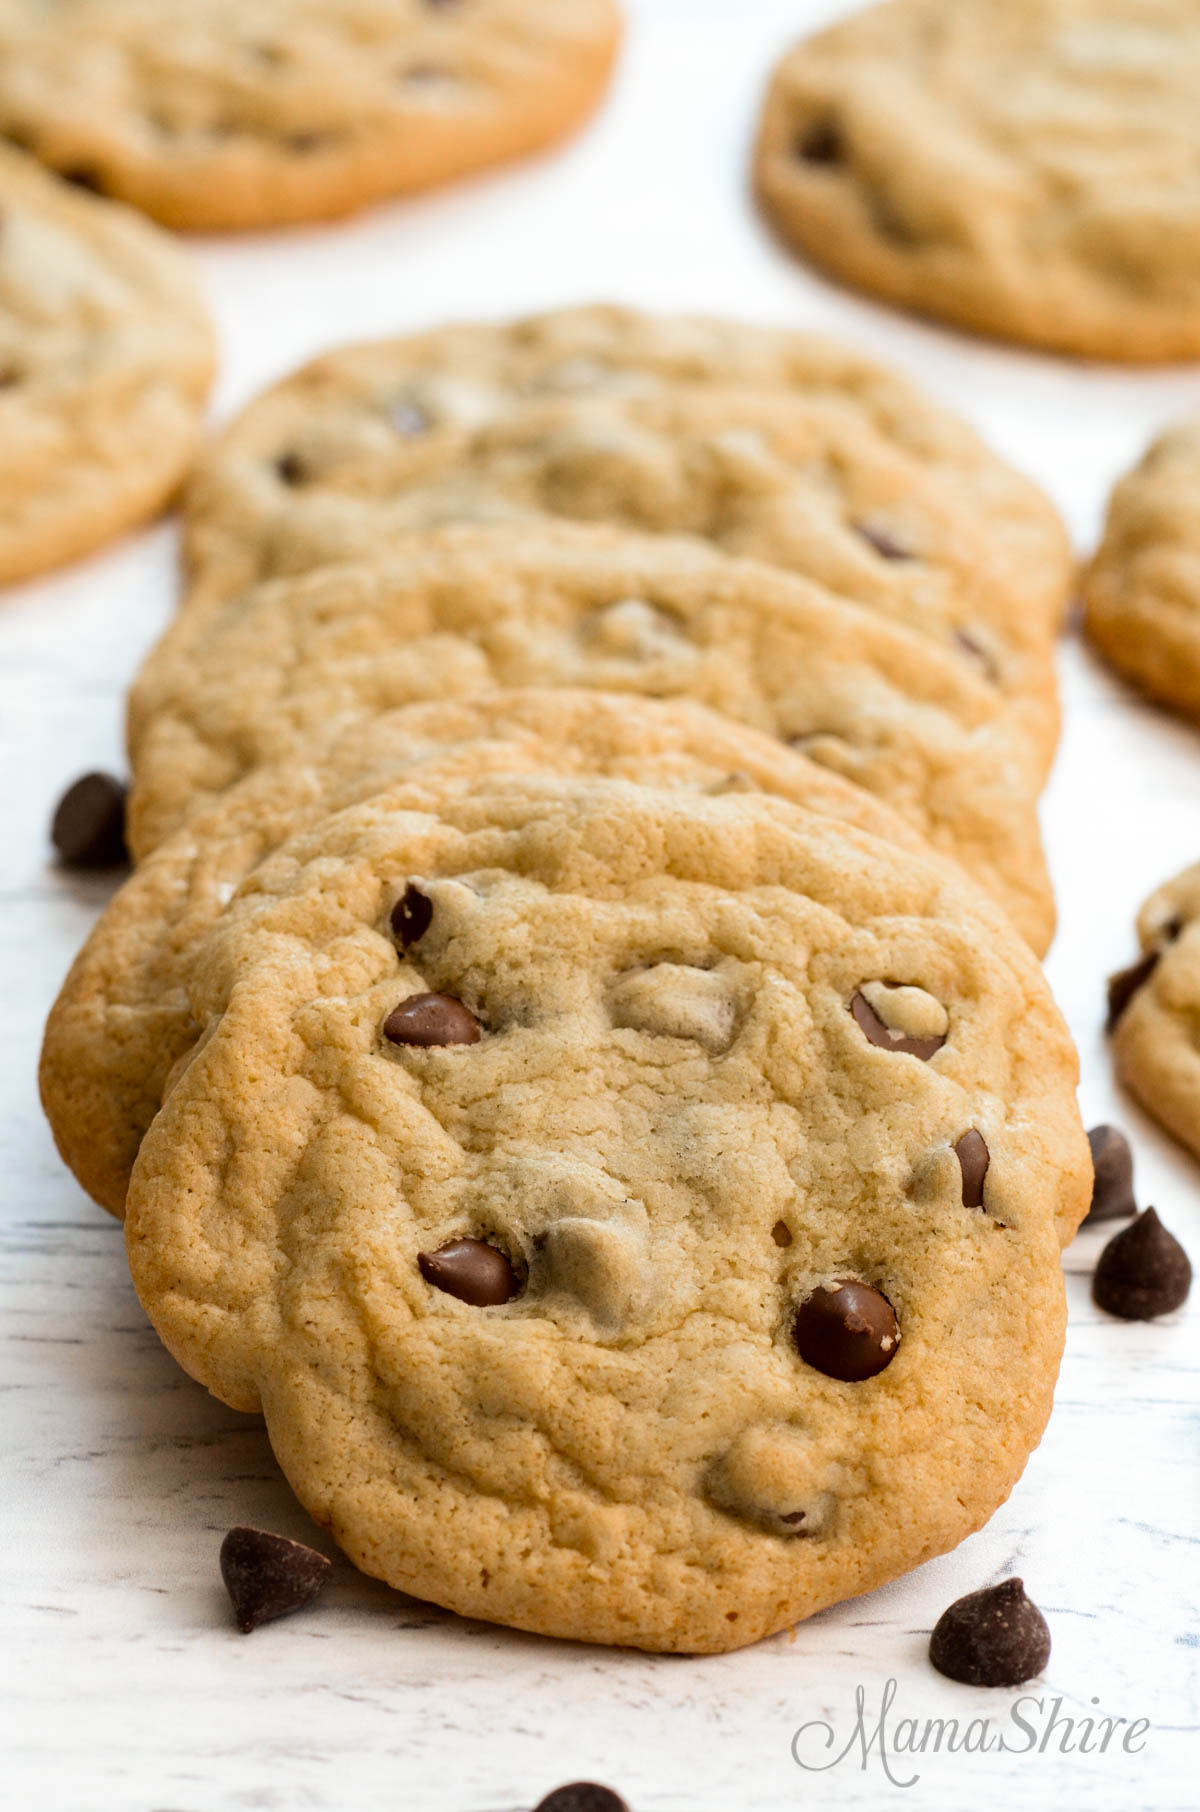 A cookie sheet full of delicious gluten-free and dairy-free chocolate chip cookies.